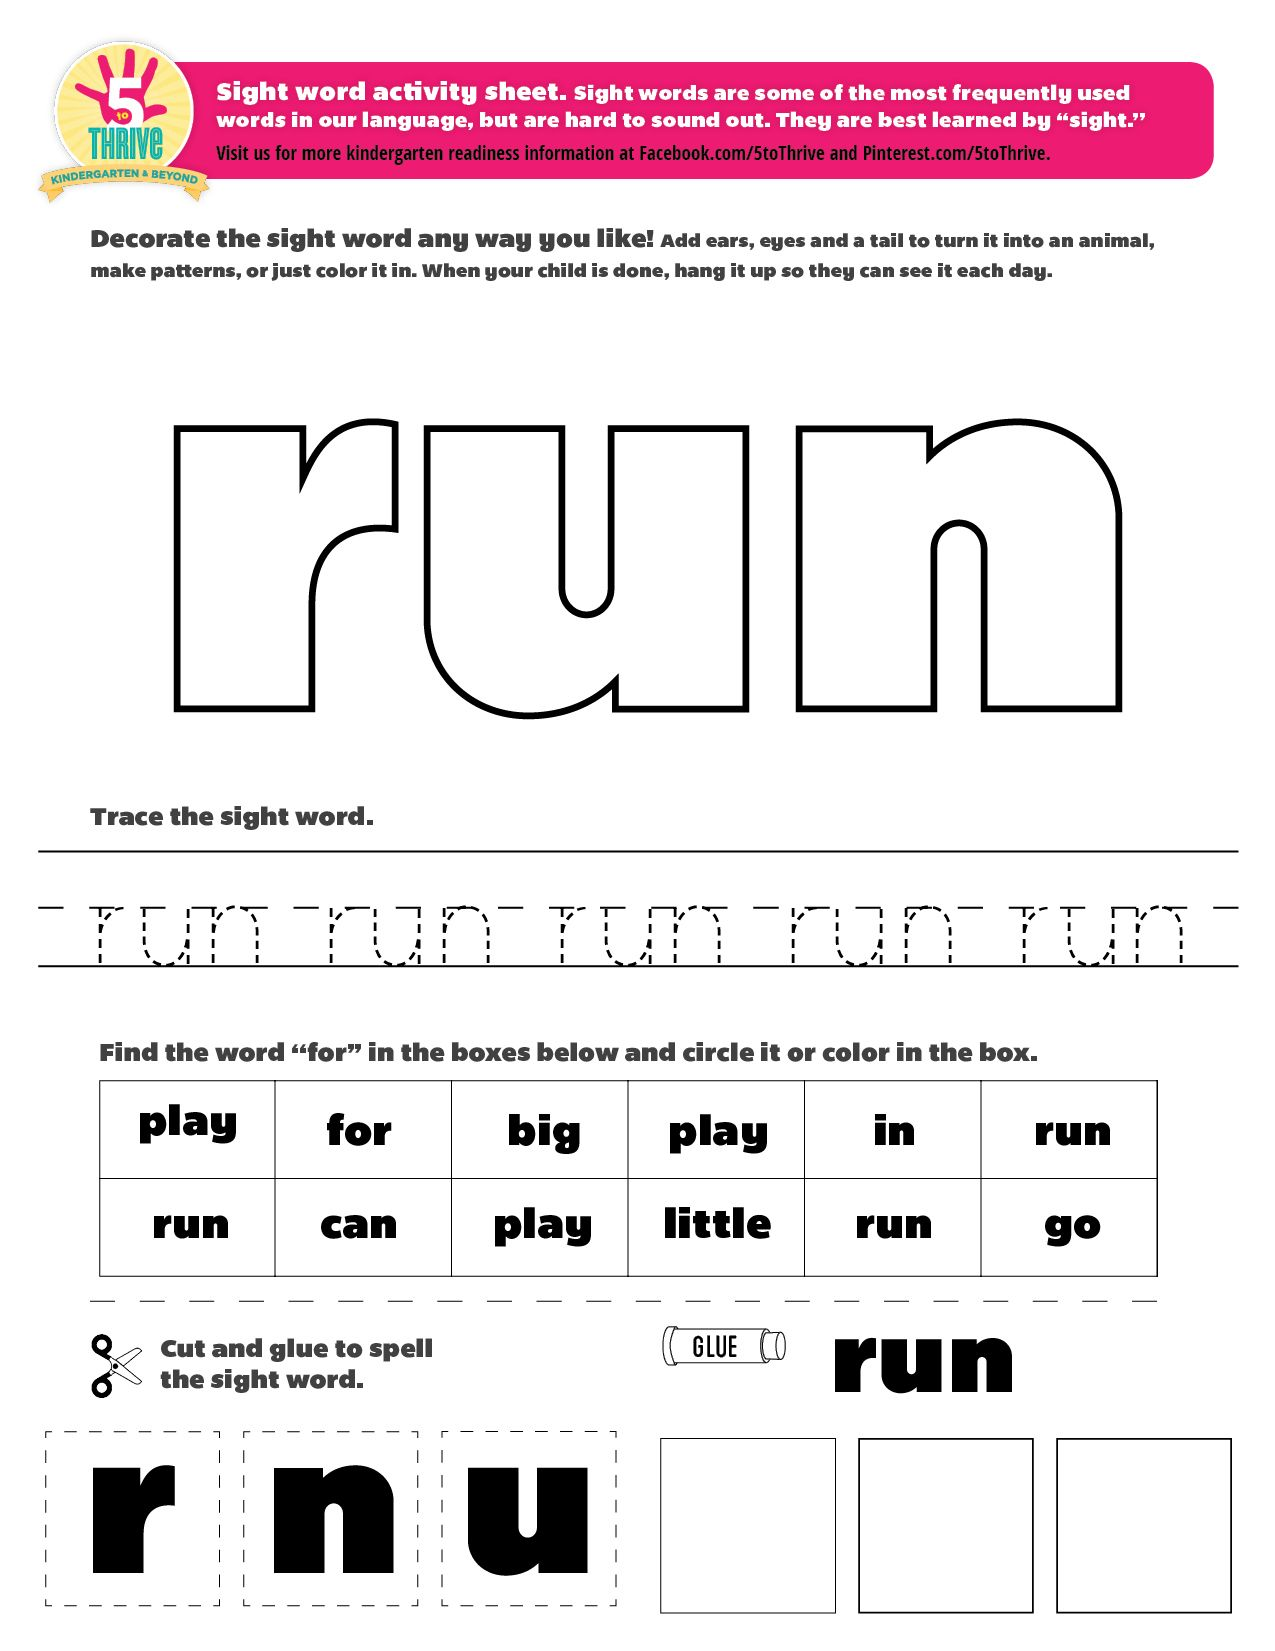 word Pin more! Pinterest printables  run 5 sight to word and on sight  Thrive by  worksheet